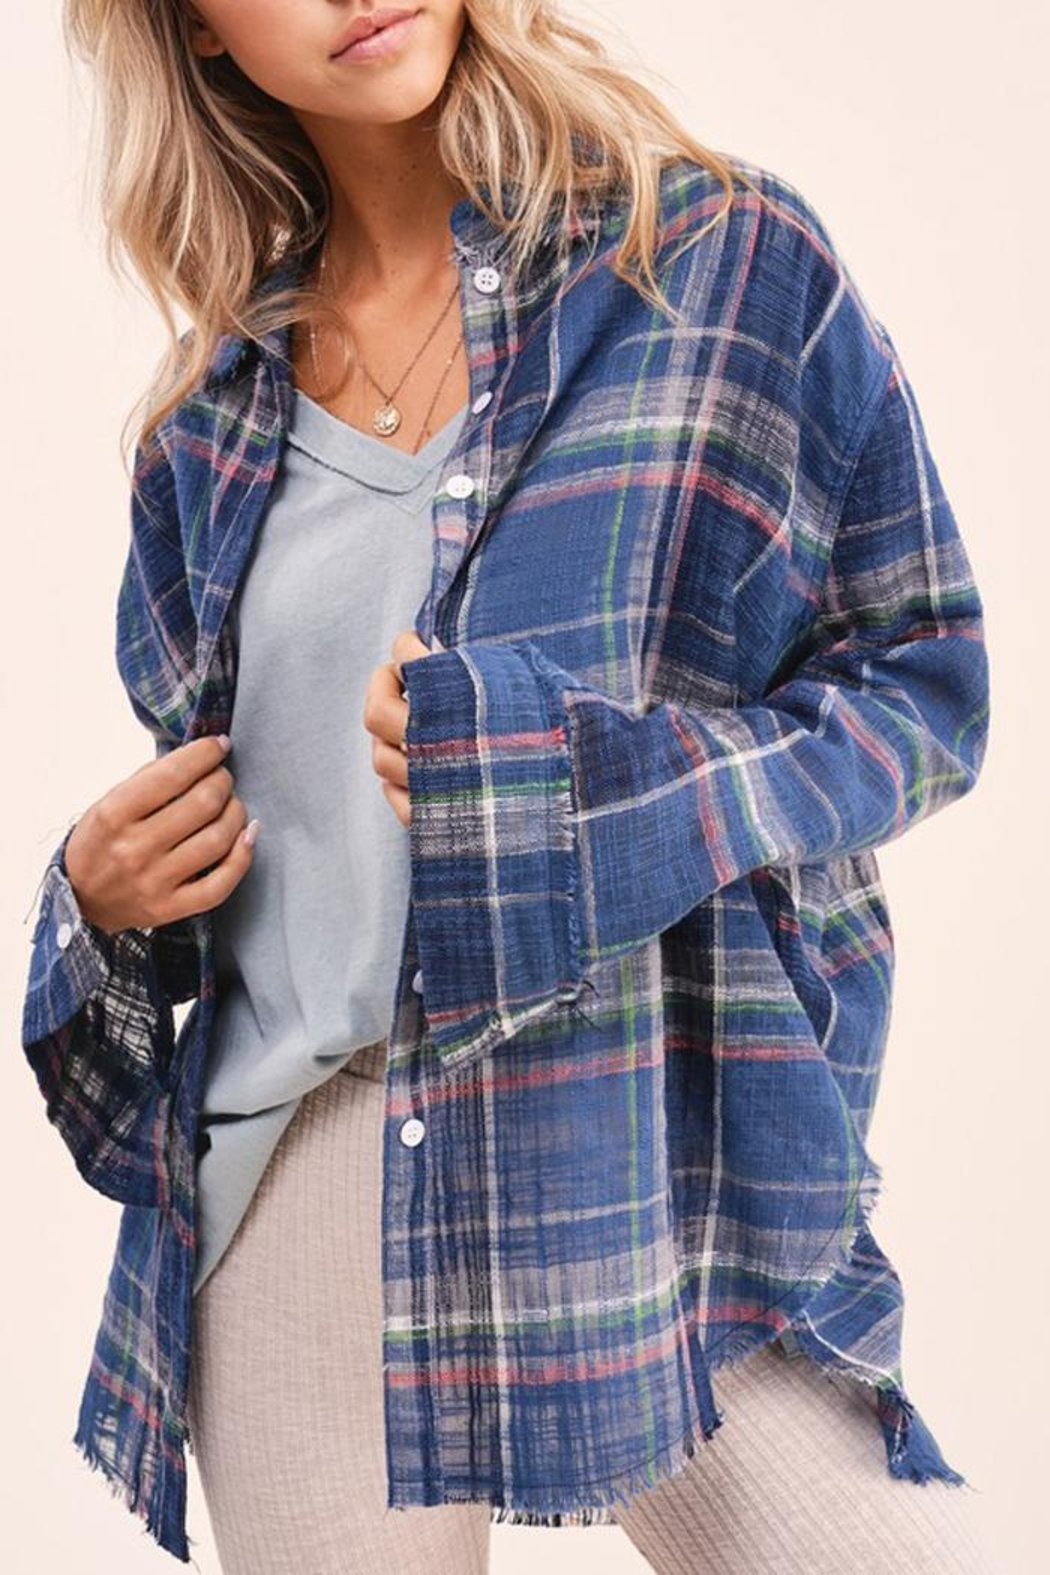 LA MIEL  Plaid Linen Touch Cotton Shirt With Raw Cut Detailing - Front Full Image